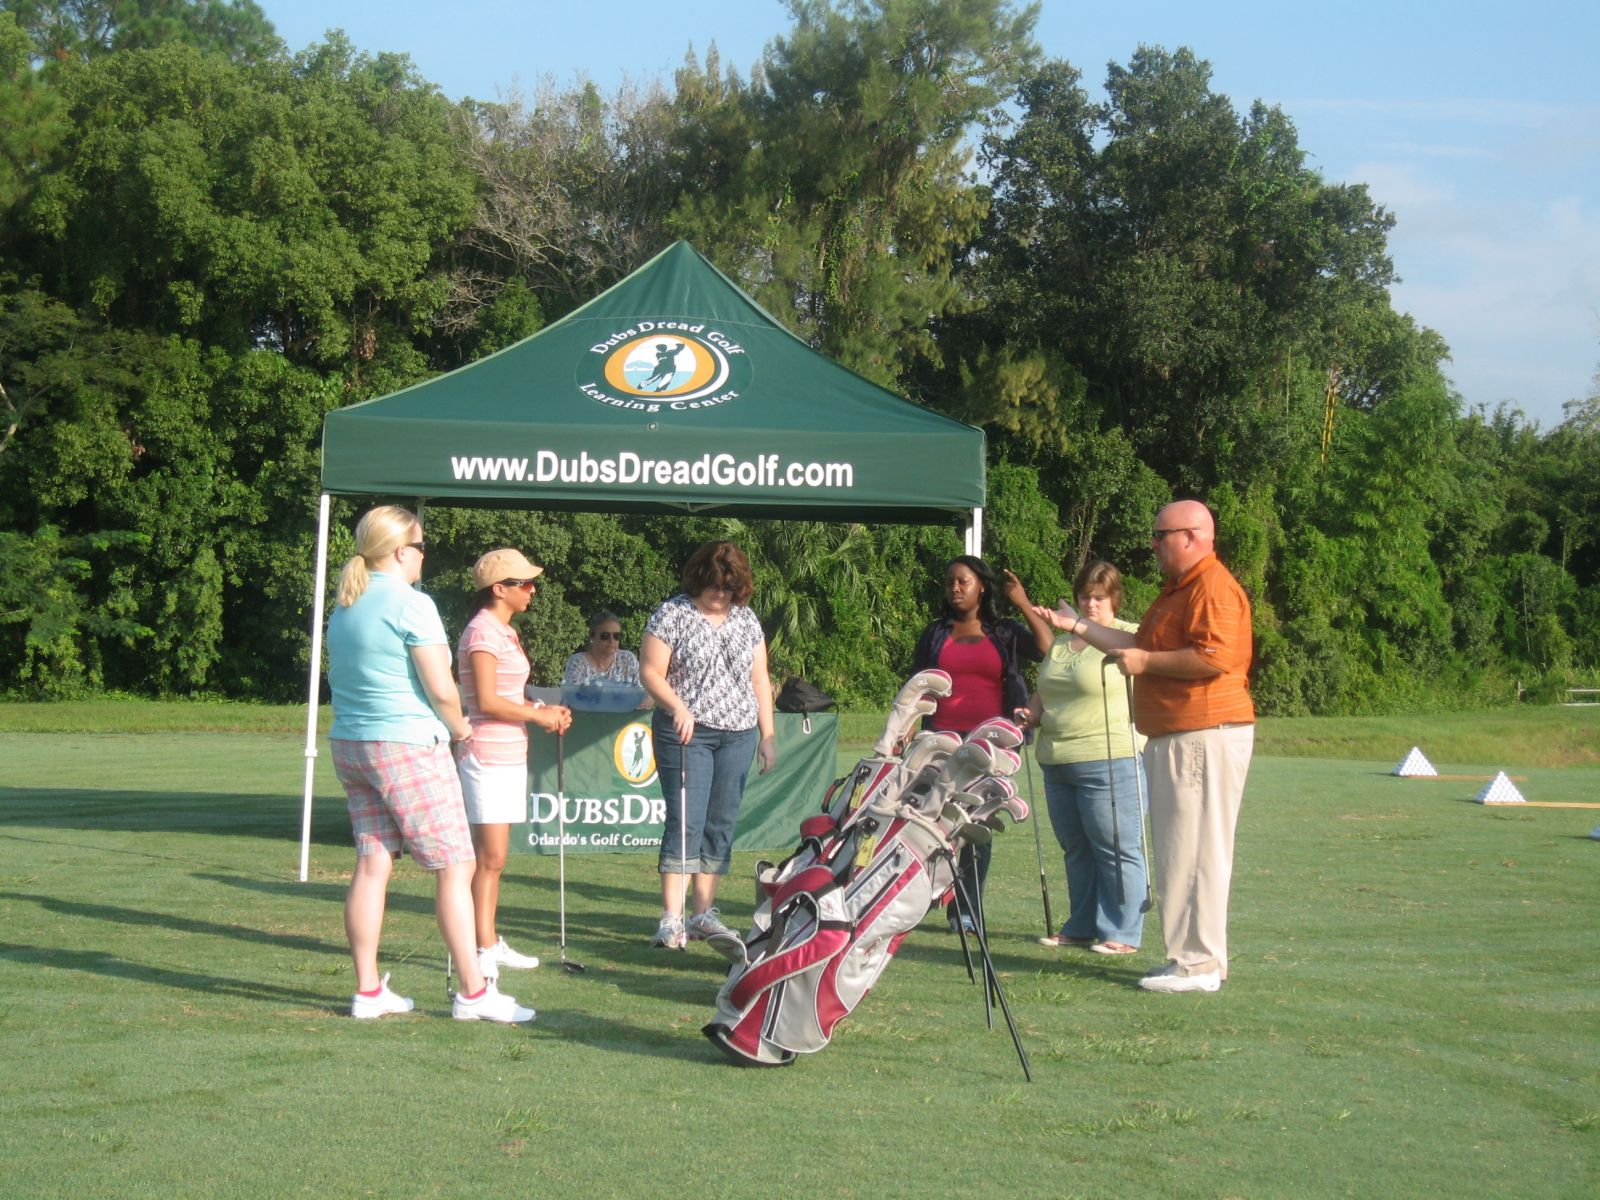 Dubsdread Tee It Up Group Lesson